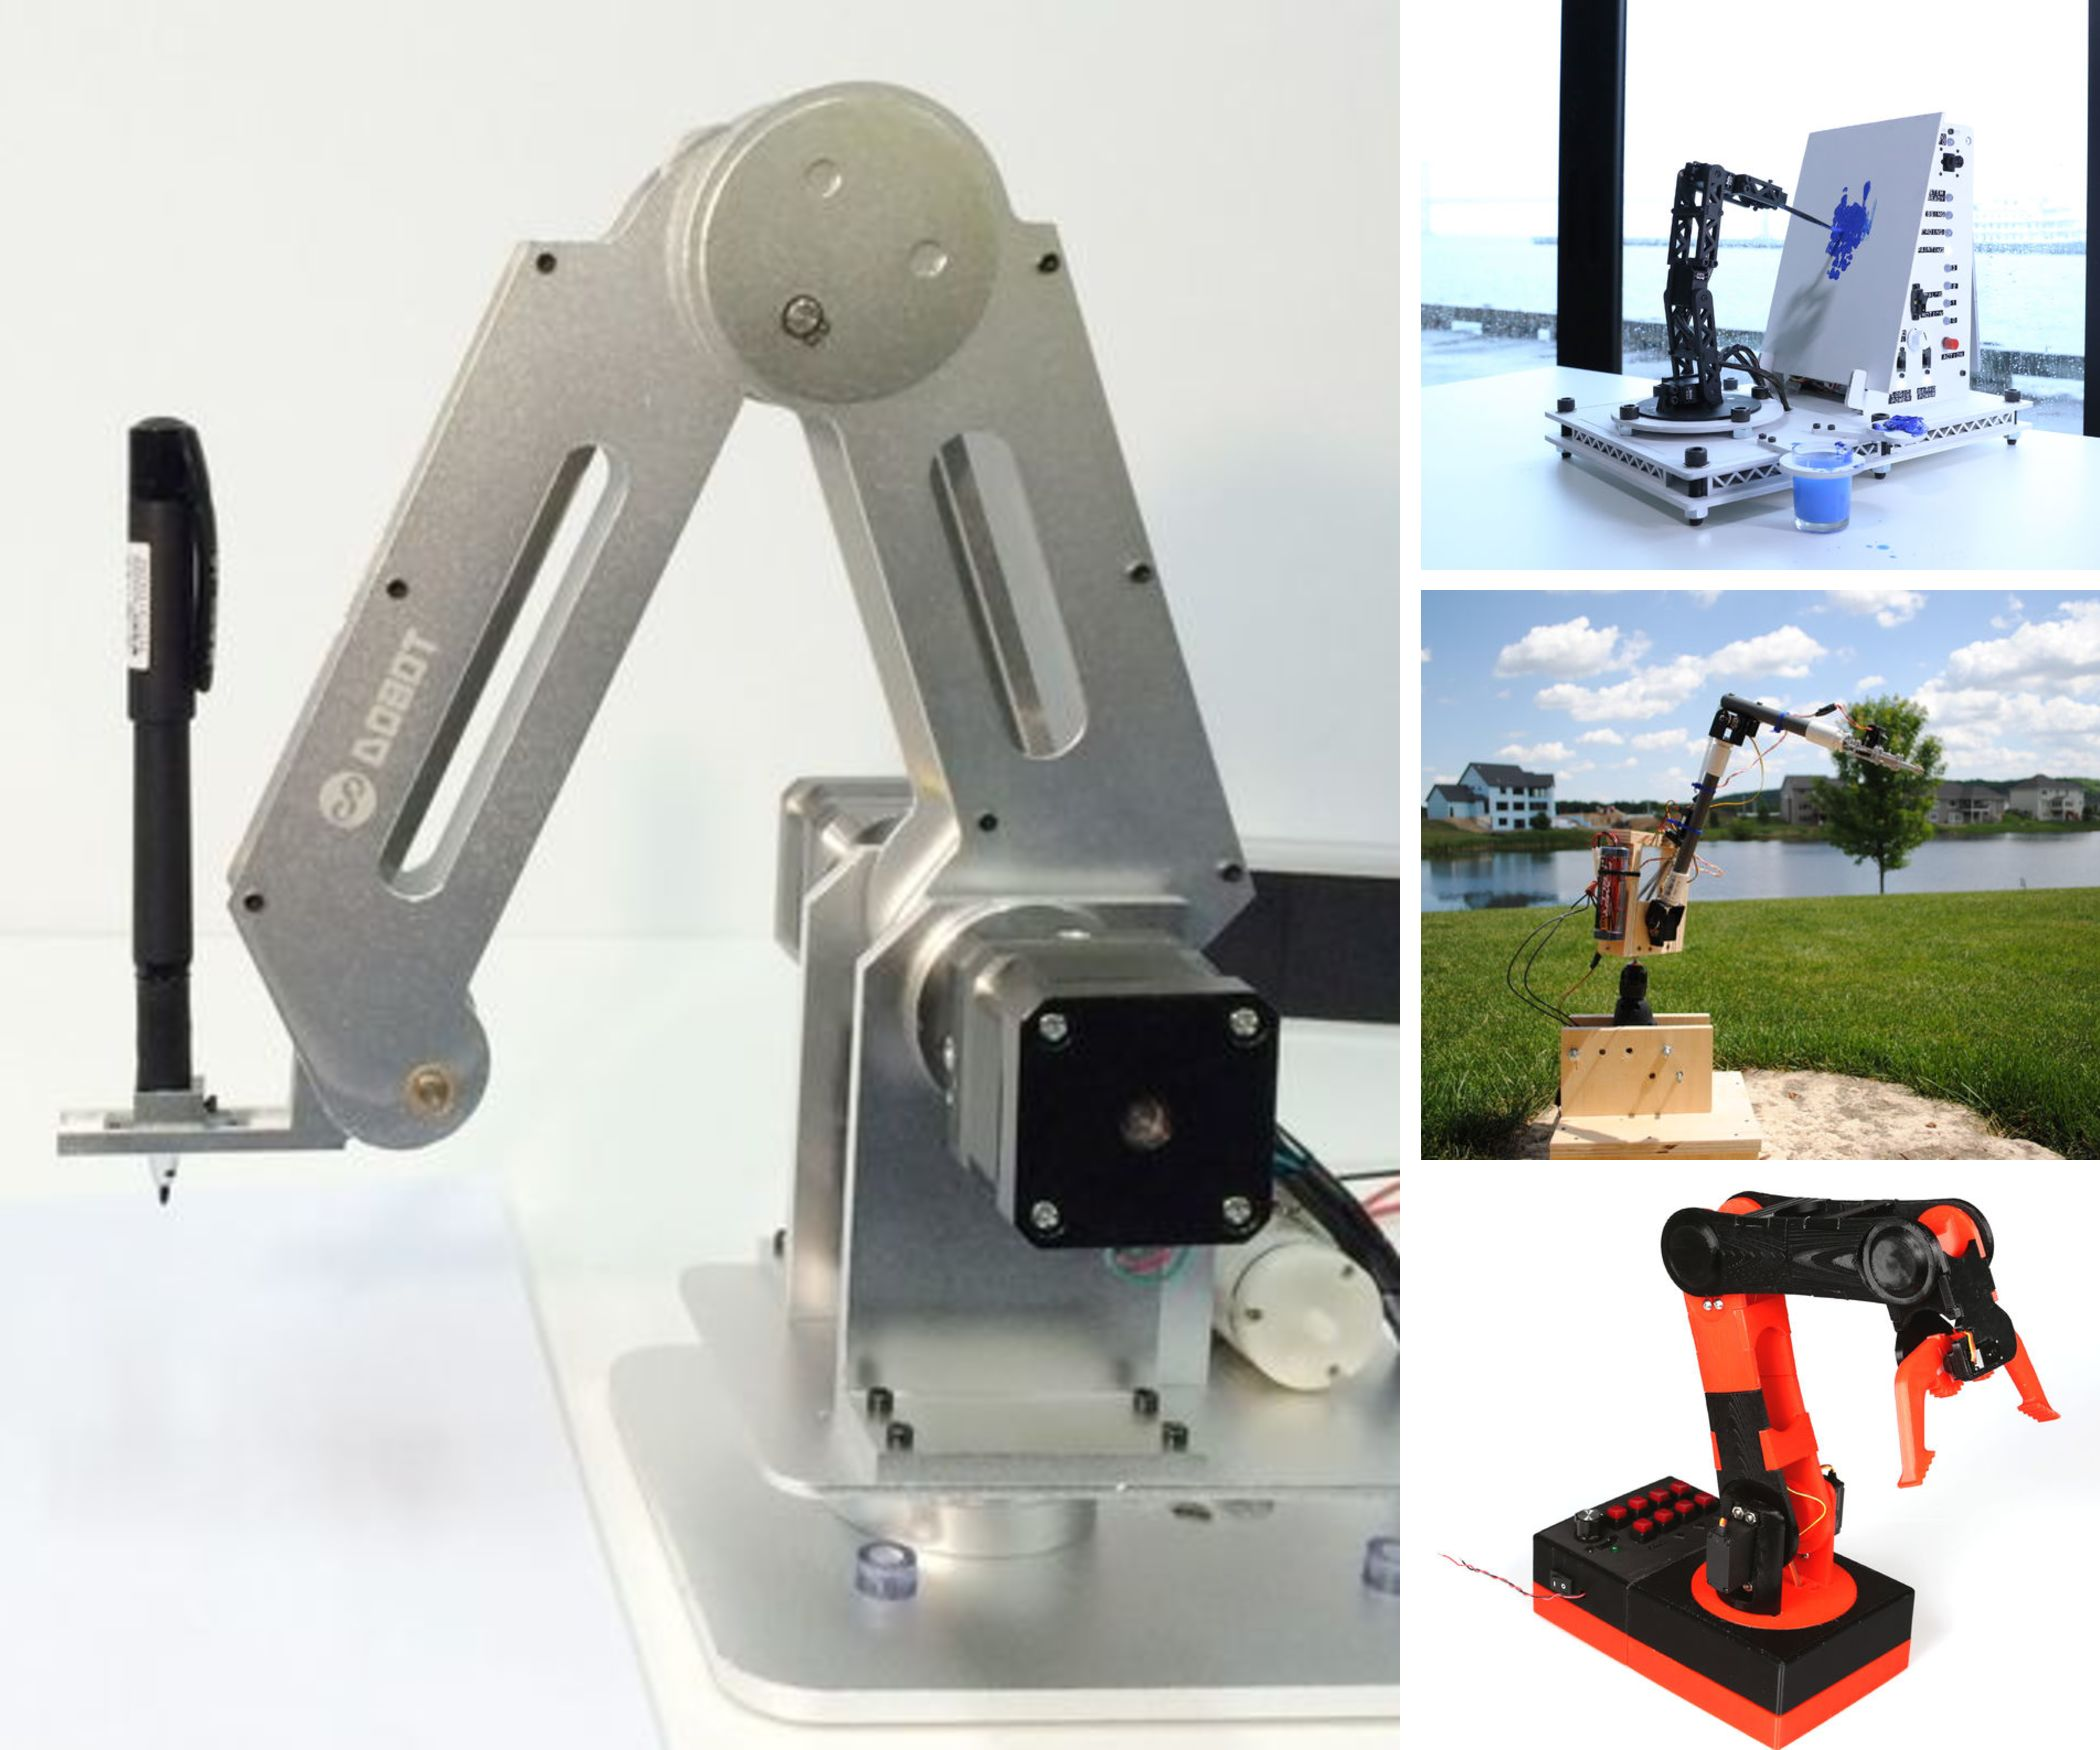 9 Robot Arms You'll Want to High-Five